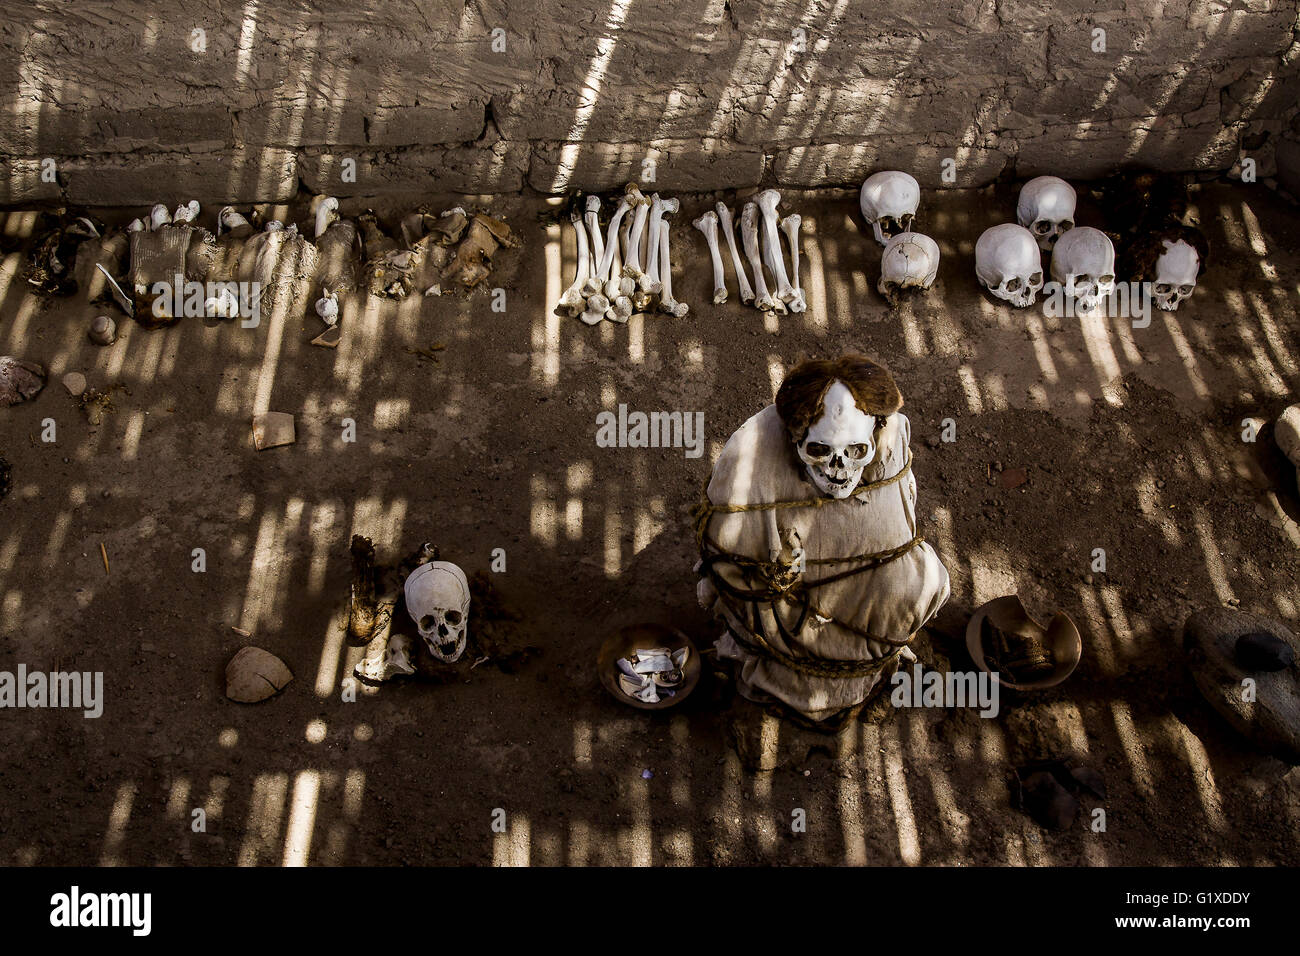 Chauchilla, an ancient precolumbian cemetery of the Nazca Culture. - Stock Image